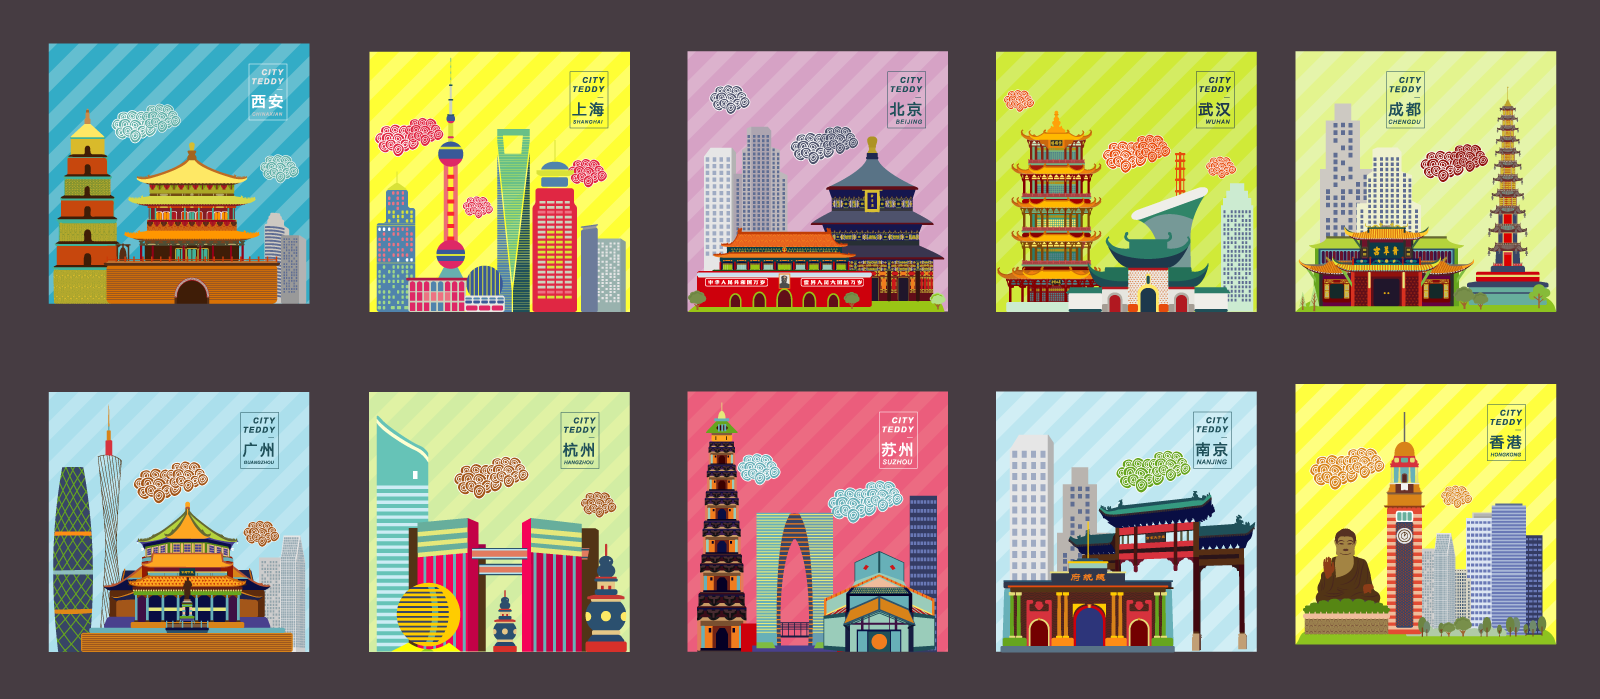 Flat Design of Chinese Cities Illustrations Vectors AI ESP Free Download